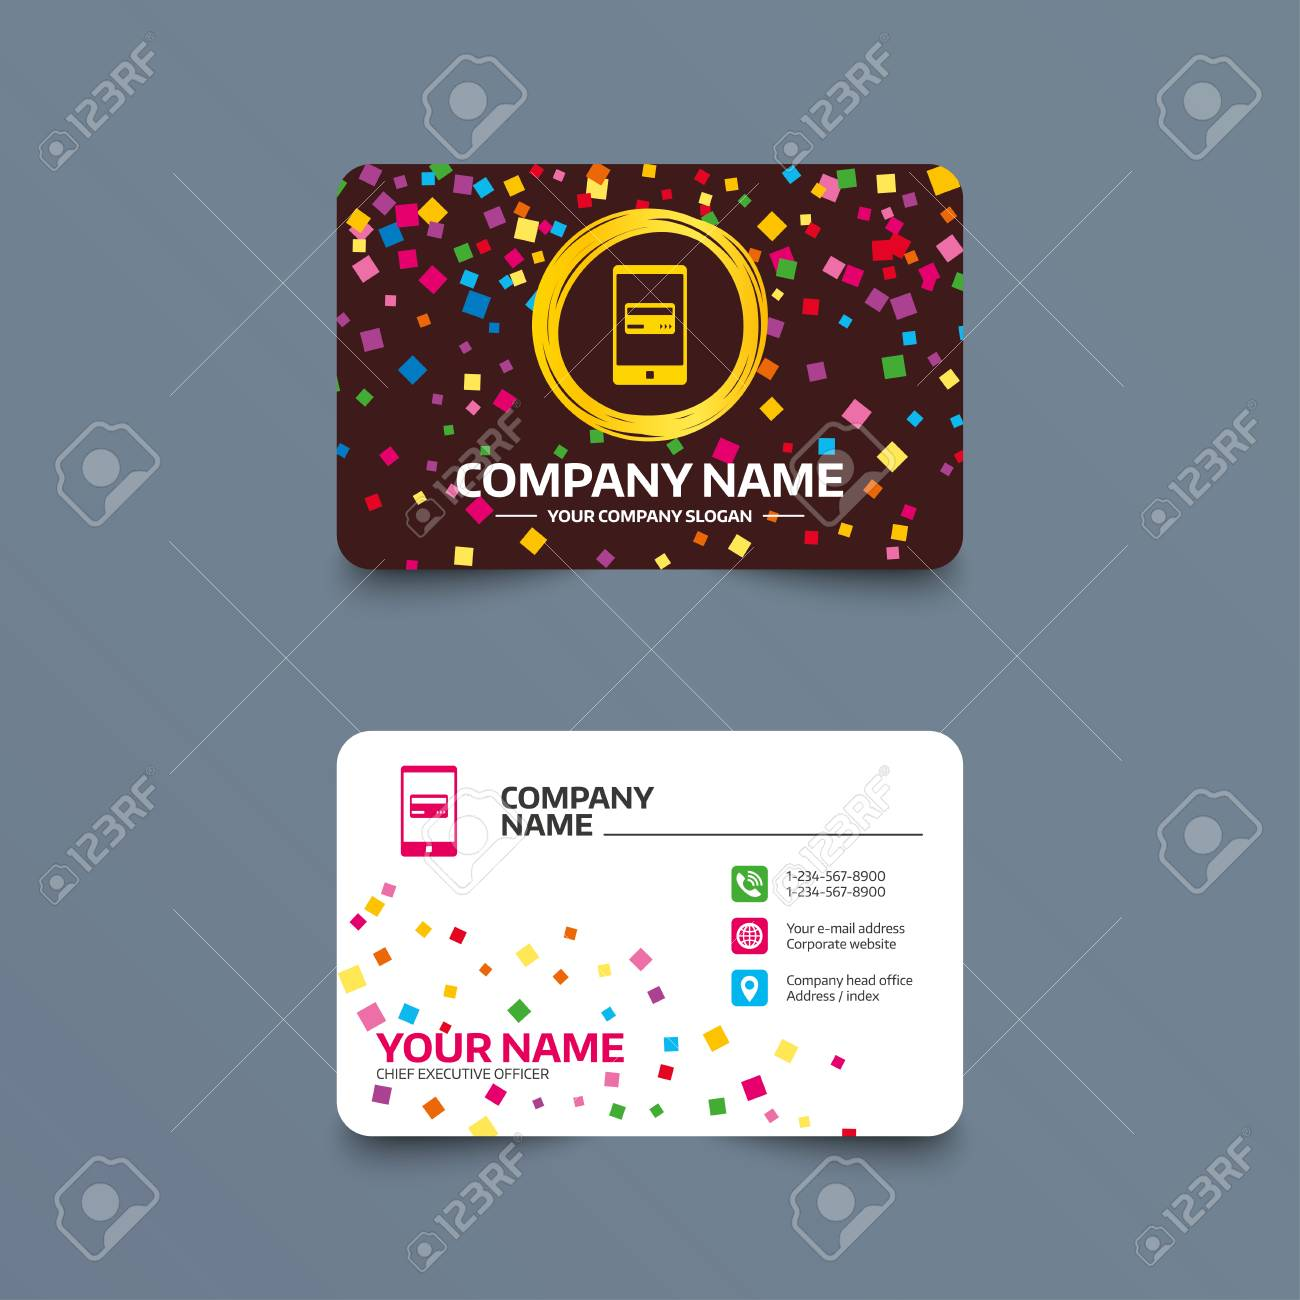 Business Card Template With Confetti Pieces Mobile Payments - Mobile business card template